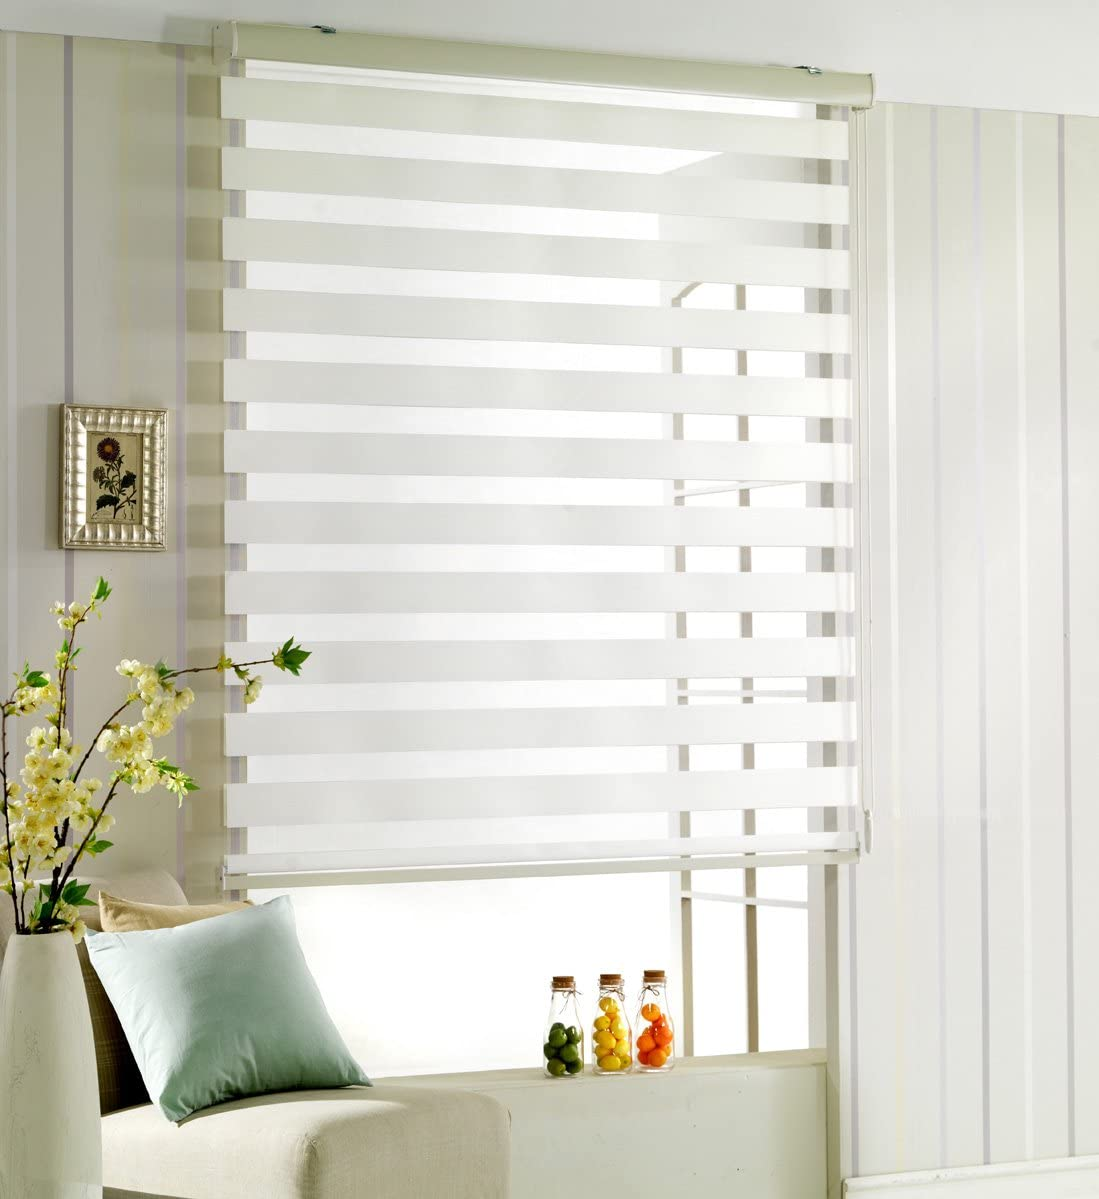 Foiresoft Custom Cut to Size, Winsharp Woodlook 107, White, W 79 x H 99 inch Zebra Roller Blinds, Dual Layer Shades, Sheer or Privacy Light Control, Day and Night Window Drapes, 20 to 110 inch Wide